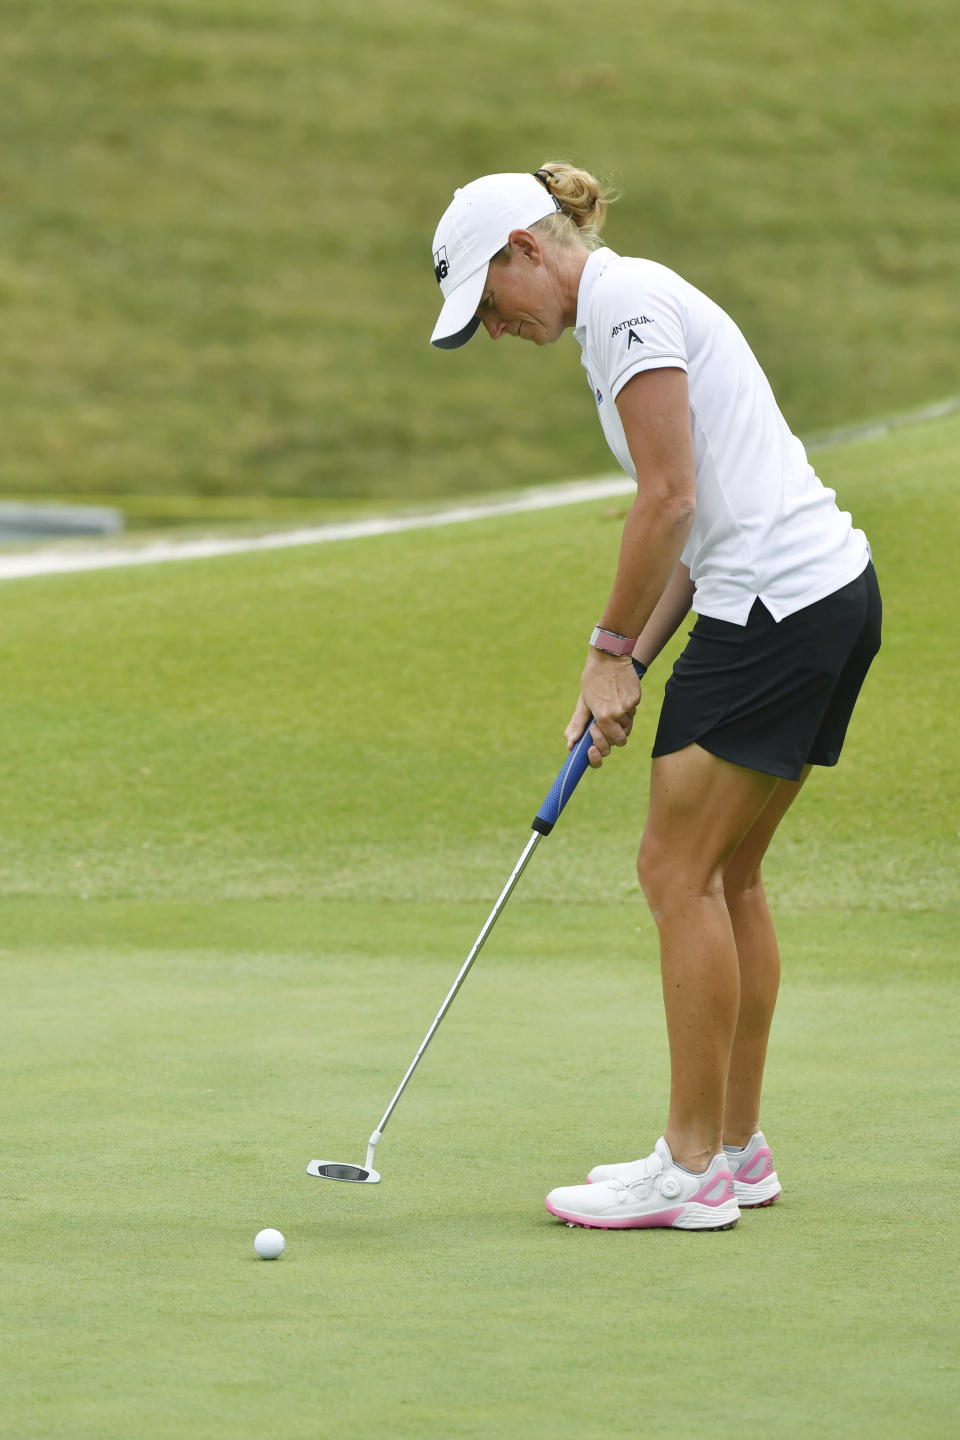 Stacy Lewis makes her putt on the 18th green during the first round of the LPGA Walmart NW Arkansas Championship golf tournament, Friday, Sept. 24, 2021, in Rogers, Ark. (AP Photo/Michael Woods)